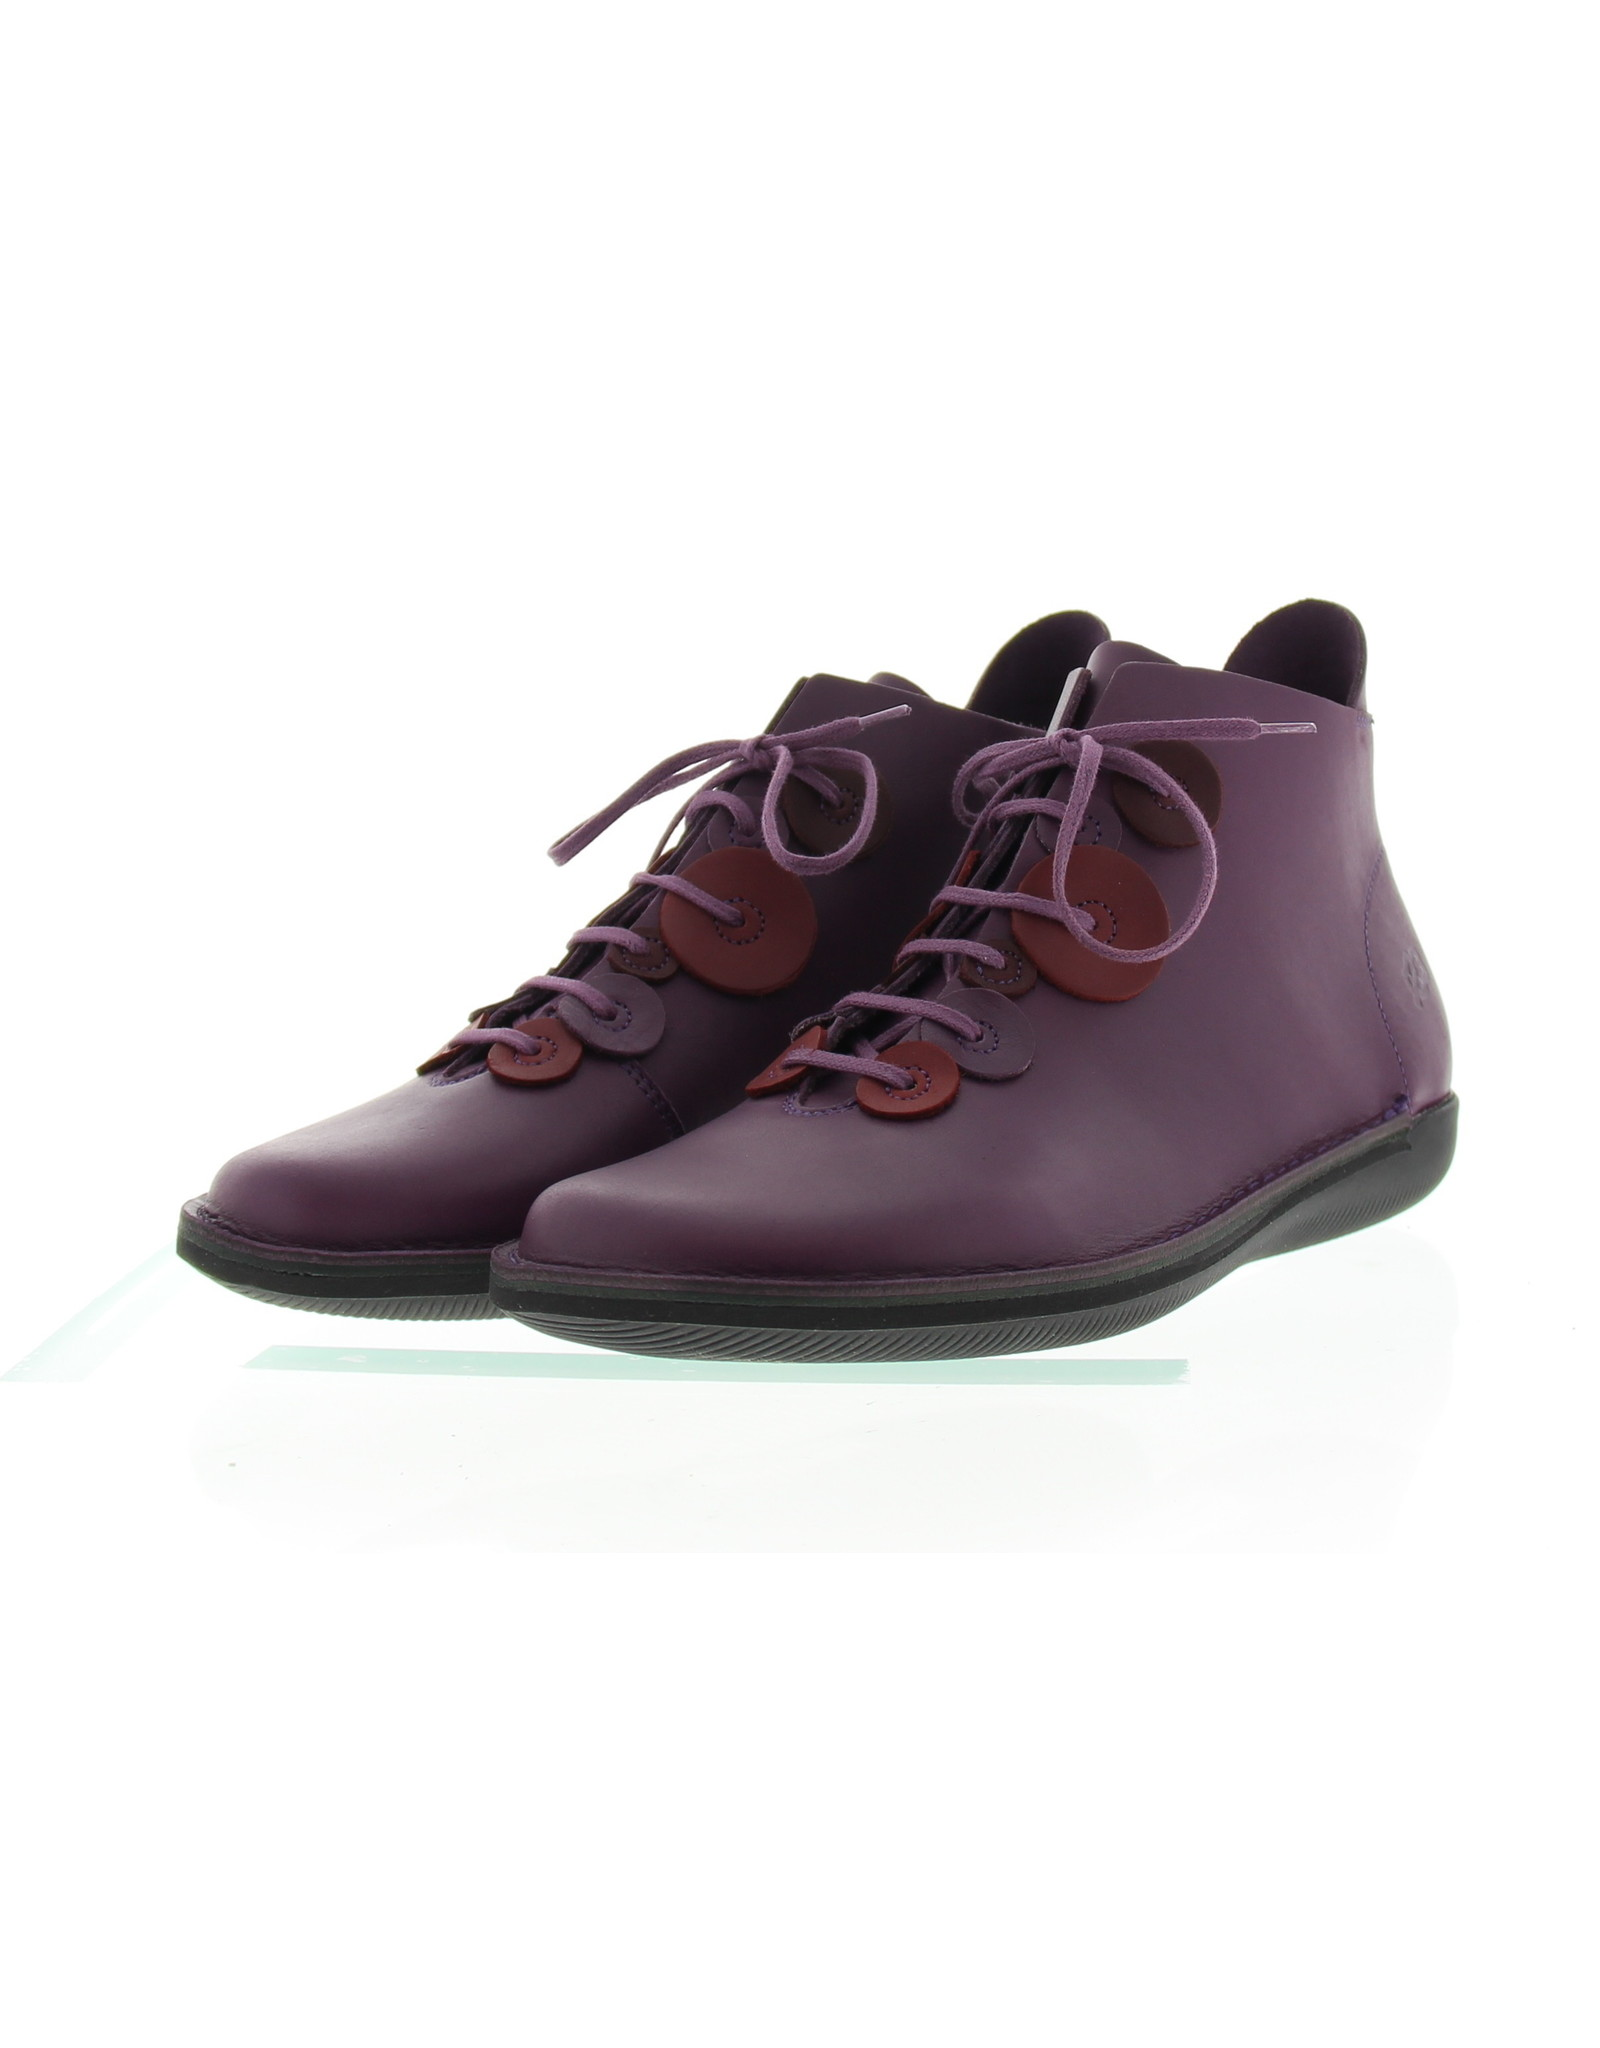 Loints Natural 68743 2502 Purple/Red